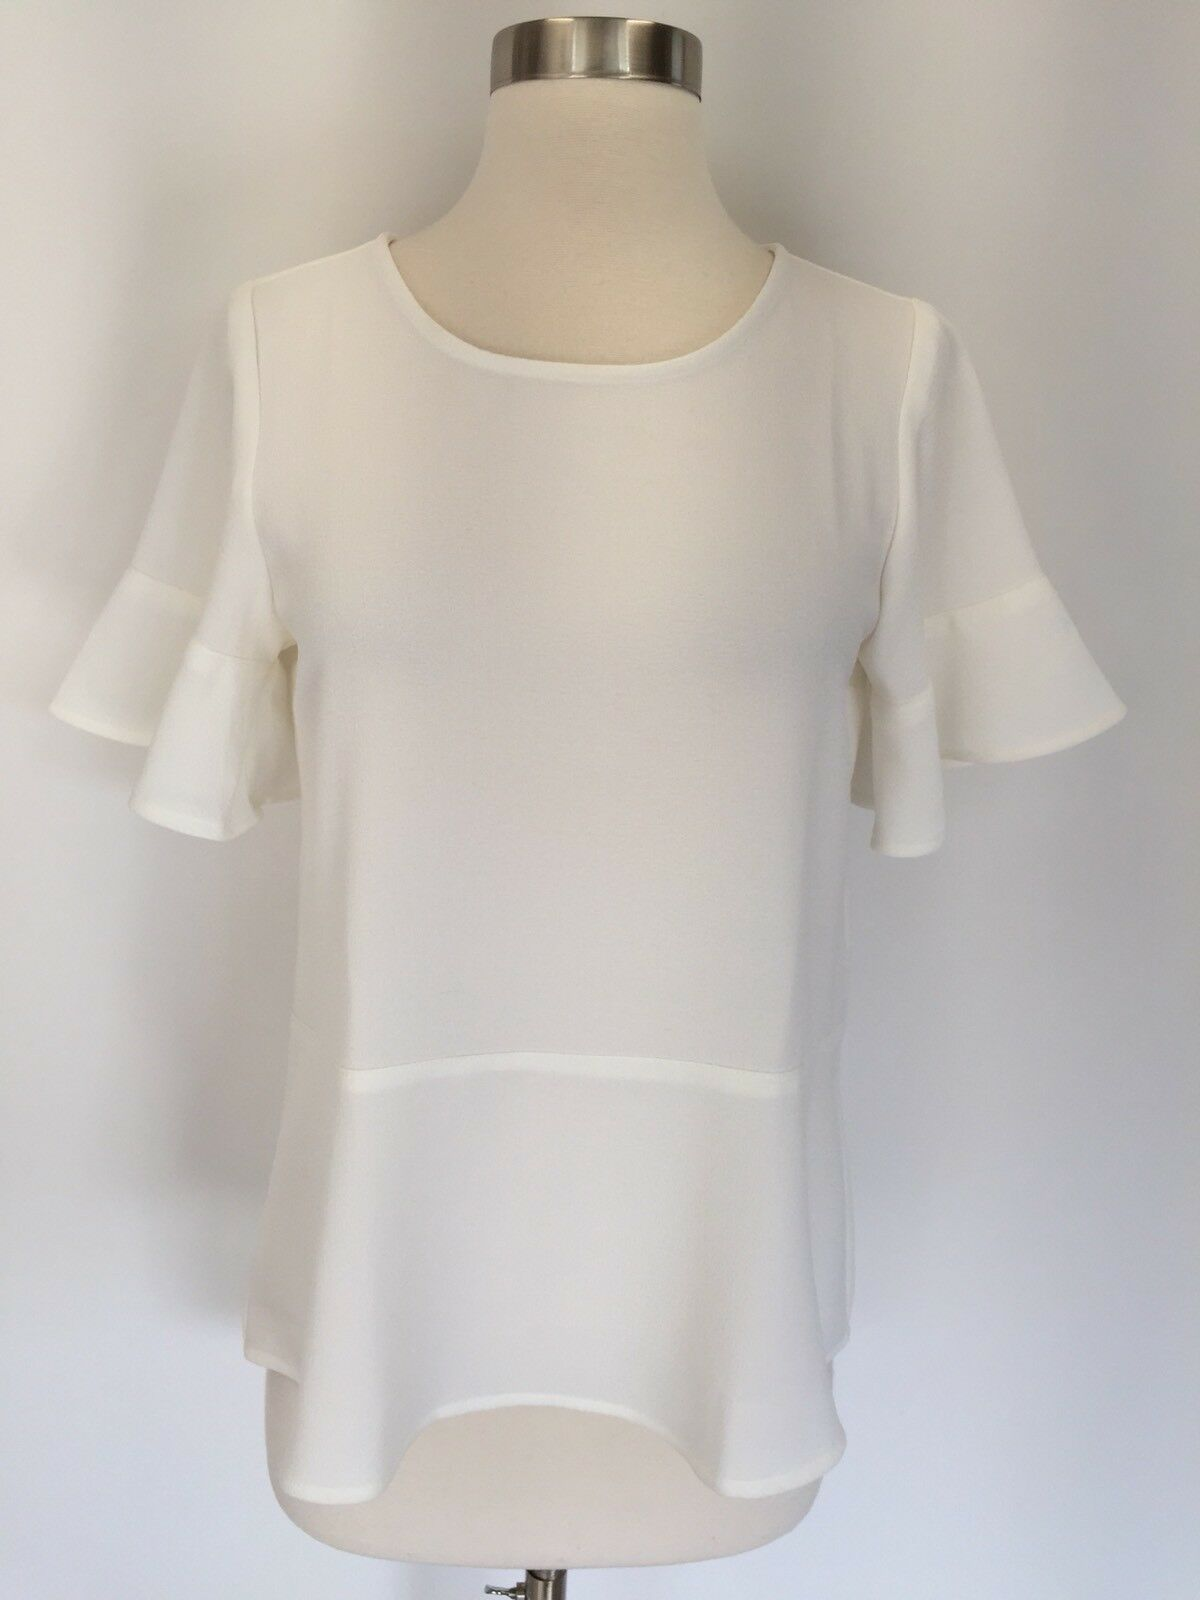 New Madewell Flare Hem Top Blouse Größe XXS Ivory Weiß Sold Out H2874